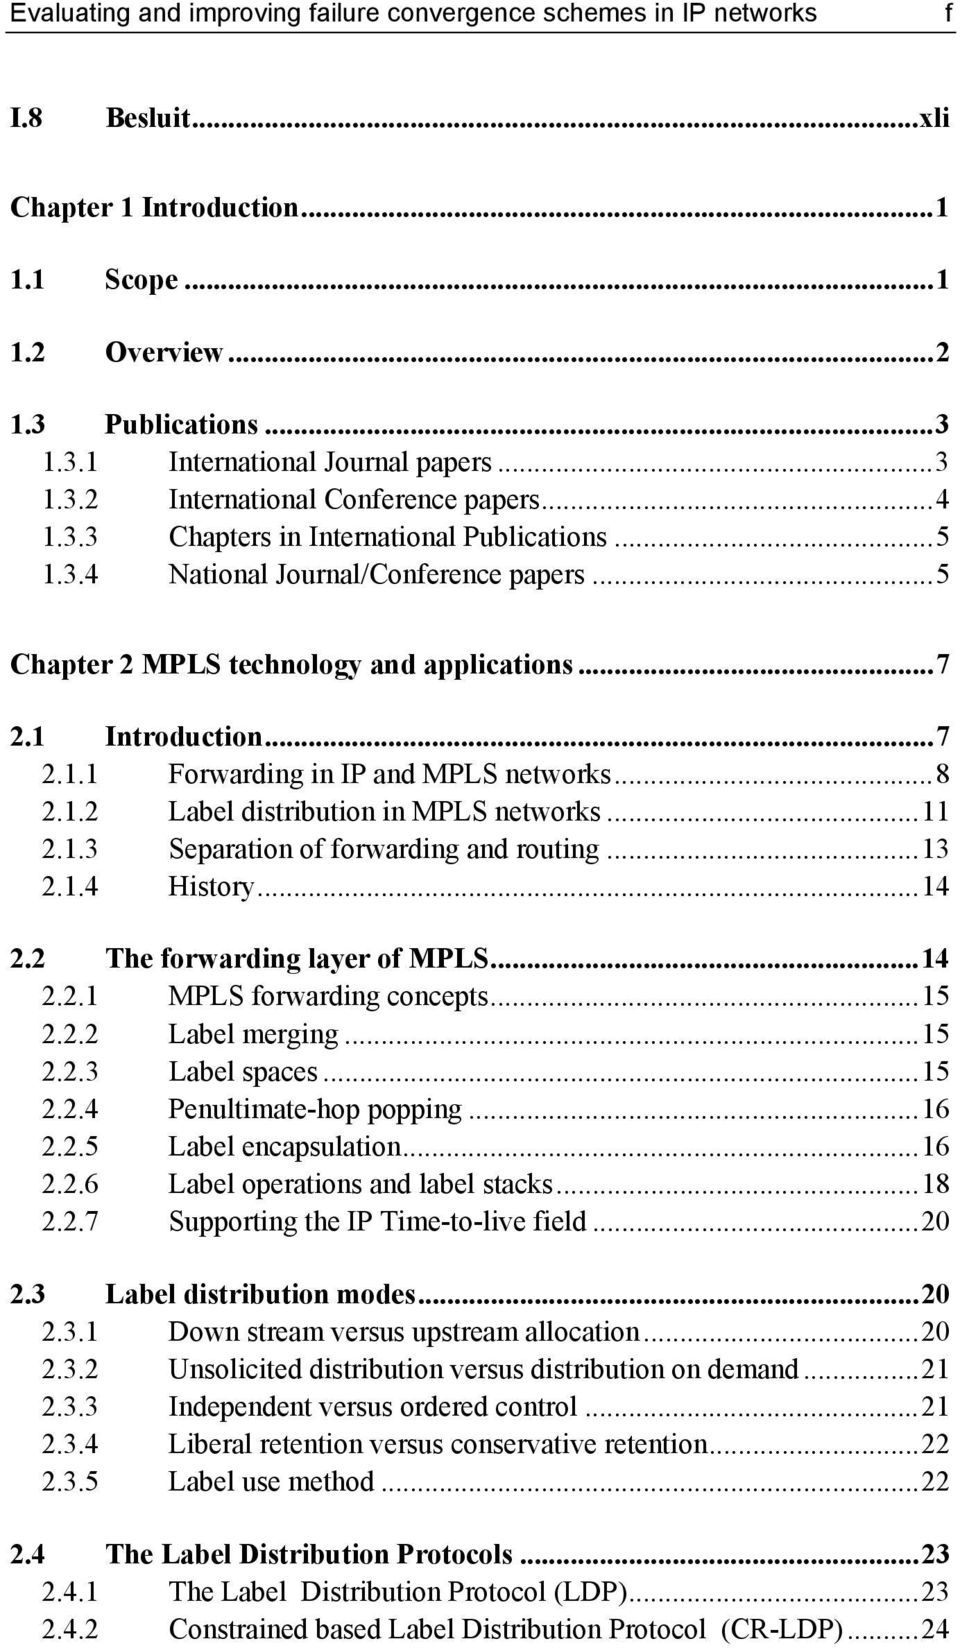 1 Introduction...7 2.1.1 Forwarding in IP and MPLS networks...8 2.1.2 Label distribution in MPLS networks...11 2.1.3 Separation of forwarding and routing...13 2.1.4 History...14 2.